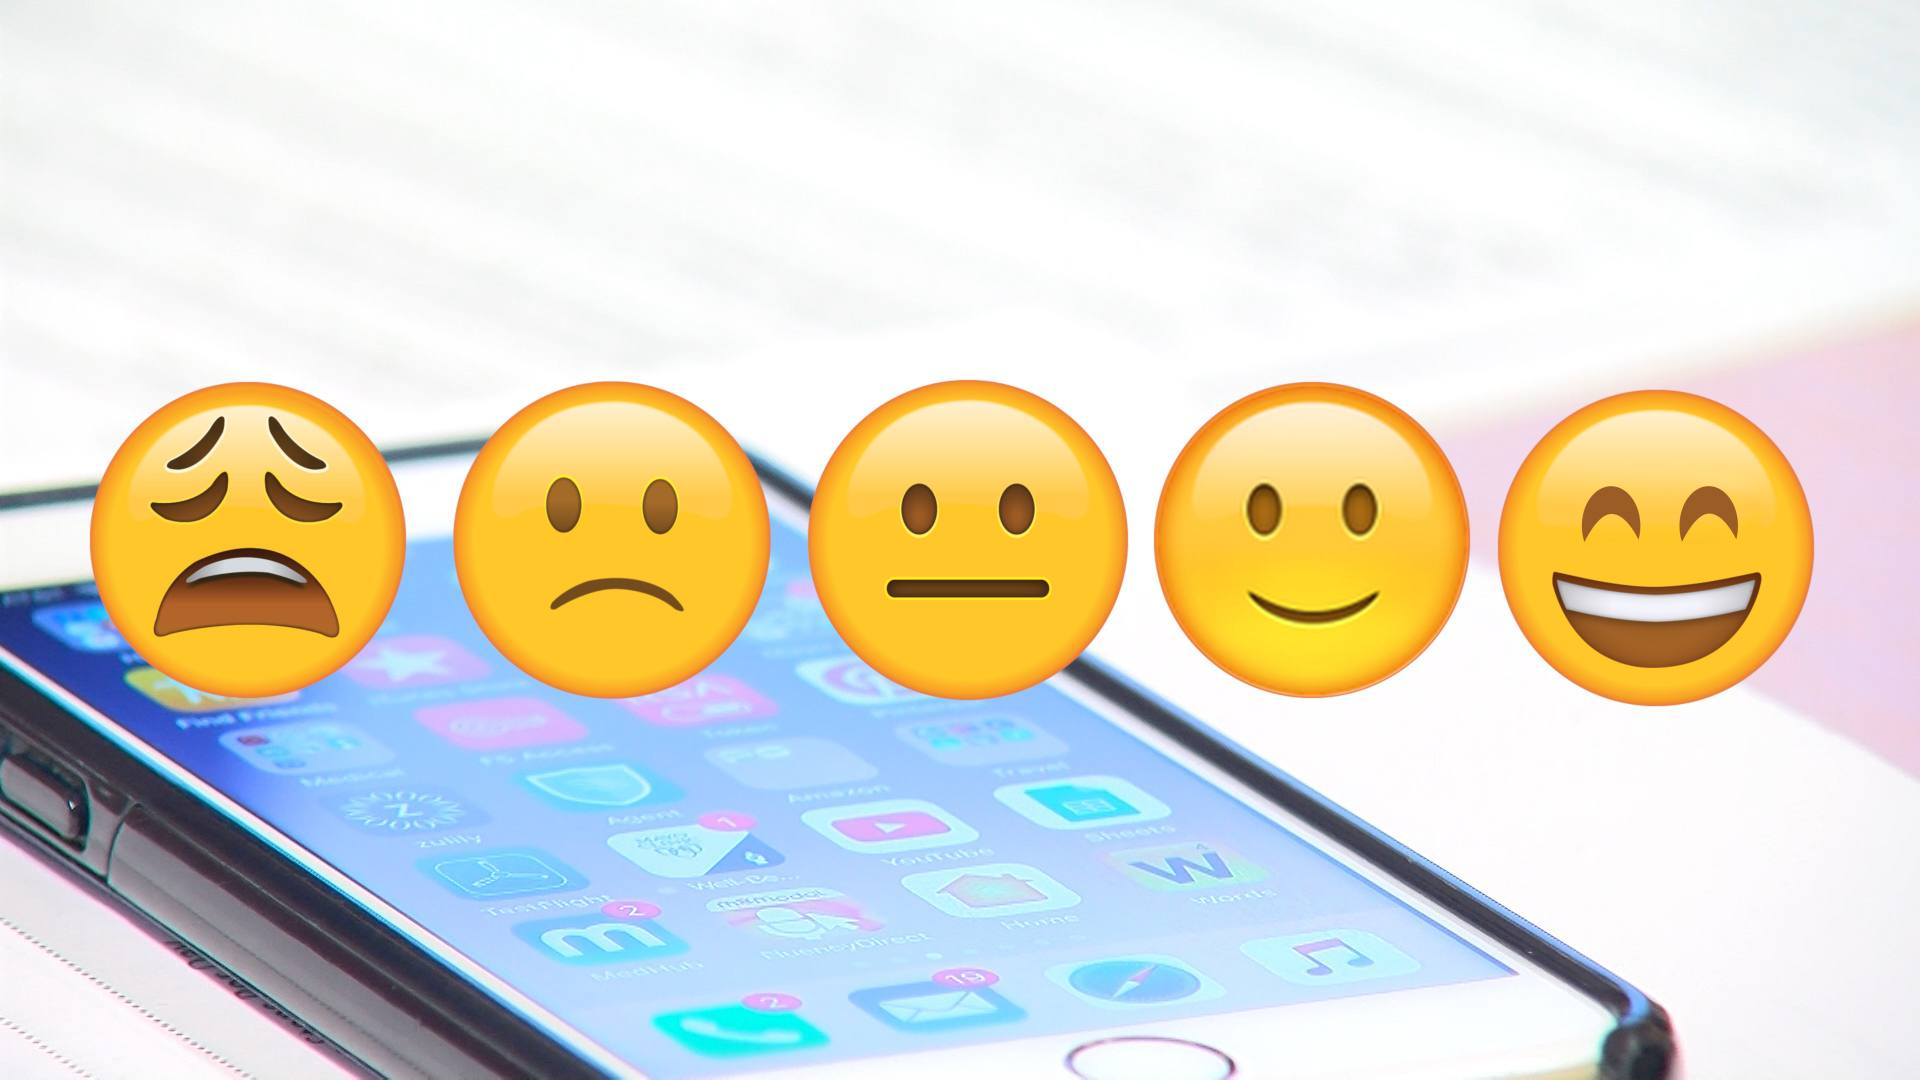 A screen shot of five emojis with a cell phone in the background.